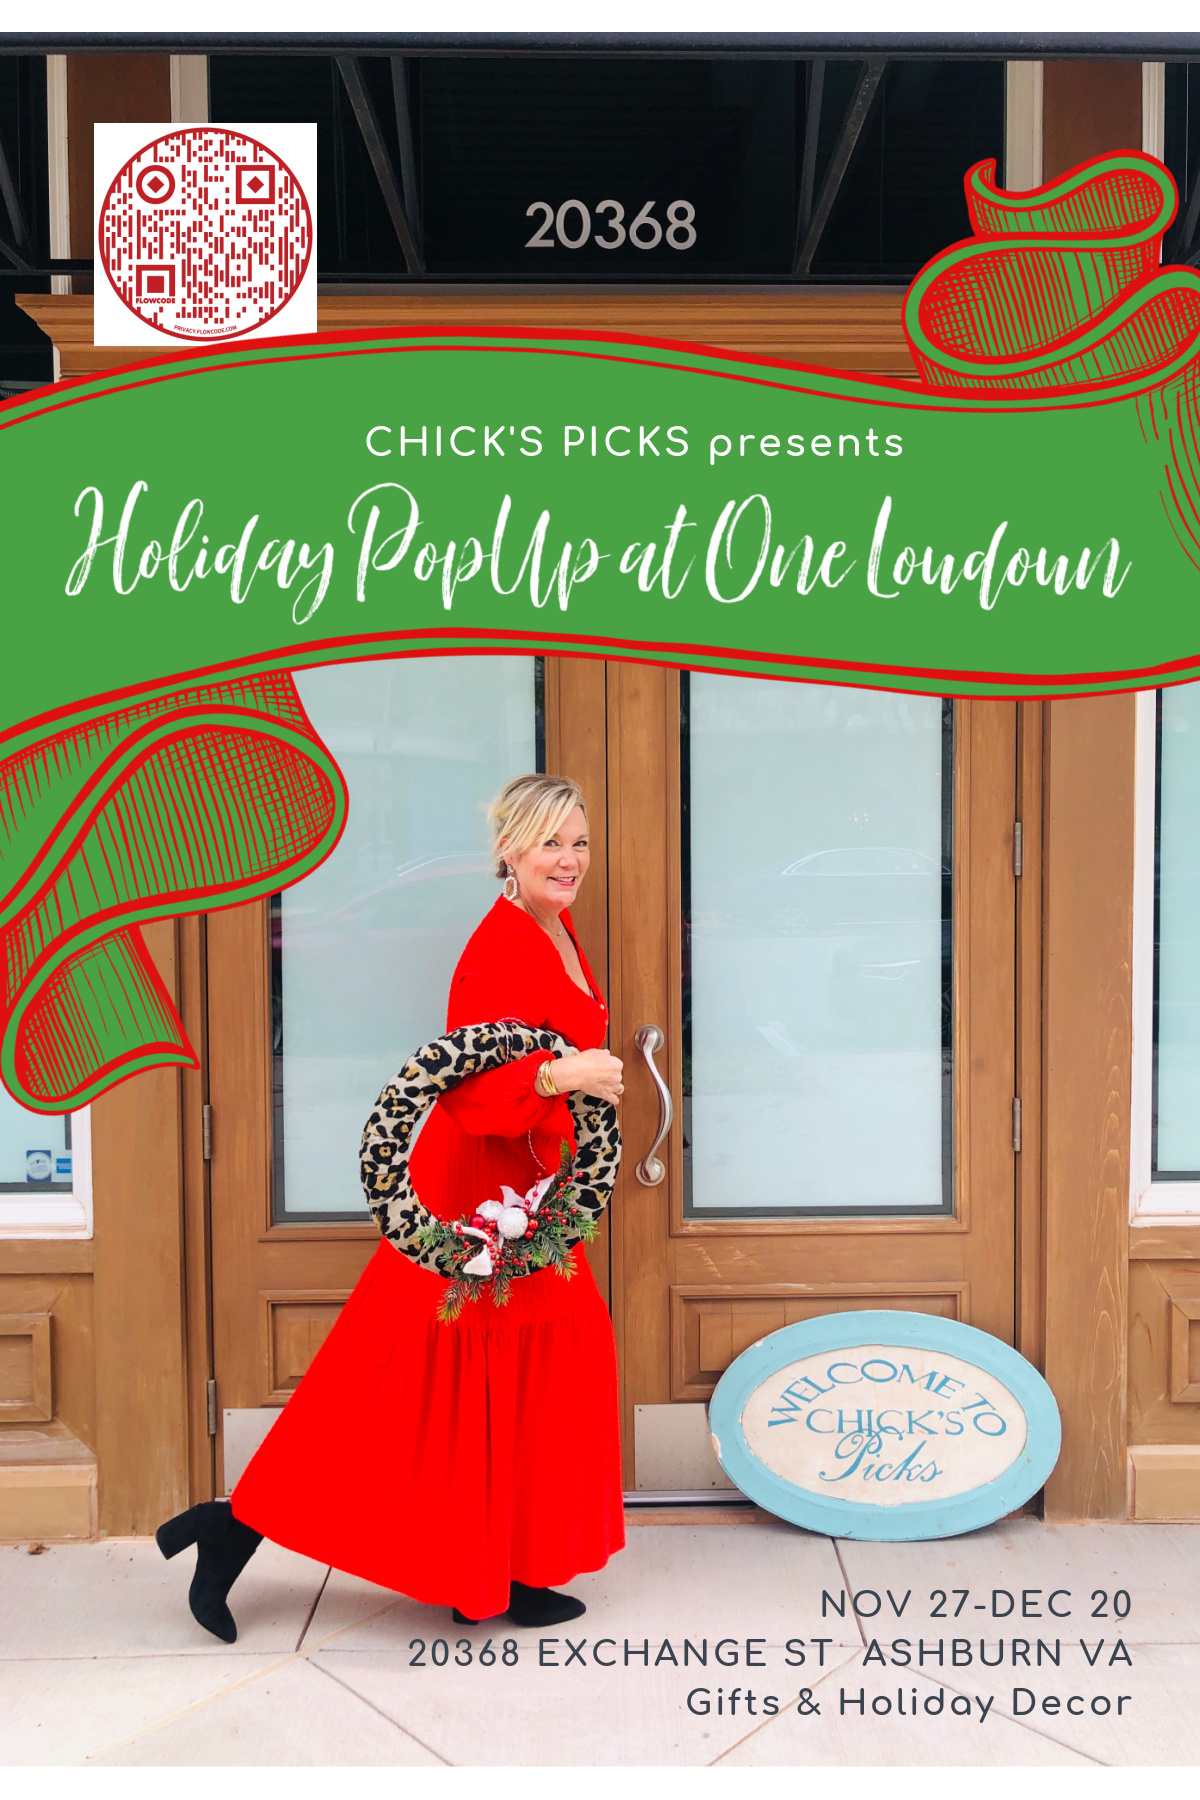 Chick's Picks Month-long Holiday Gift Pop-Up @ One Loudoun in Ashburn, VA